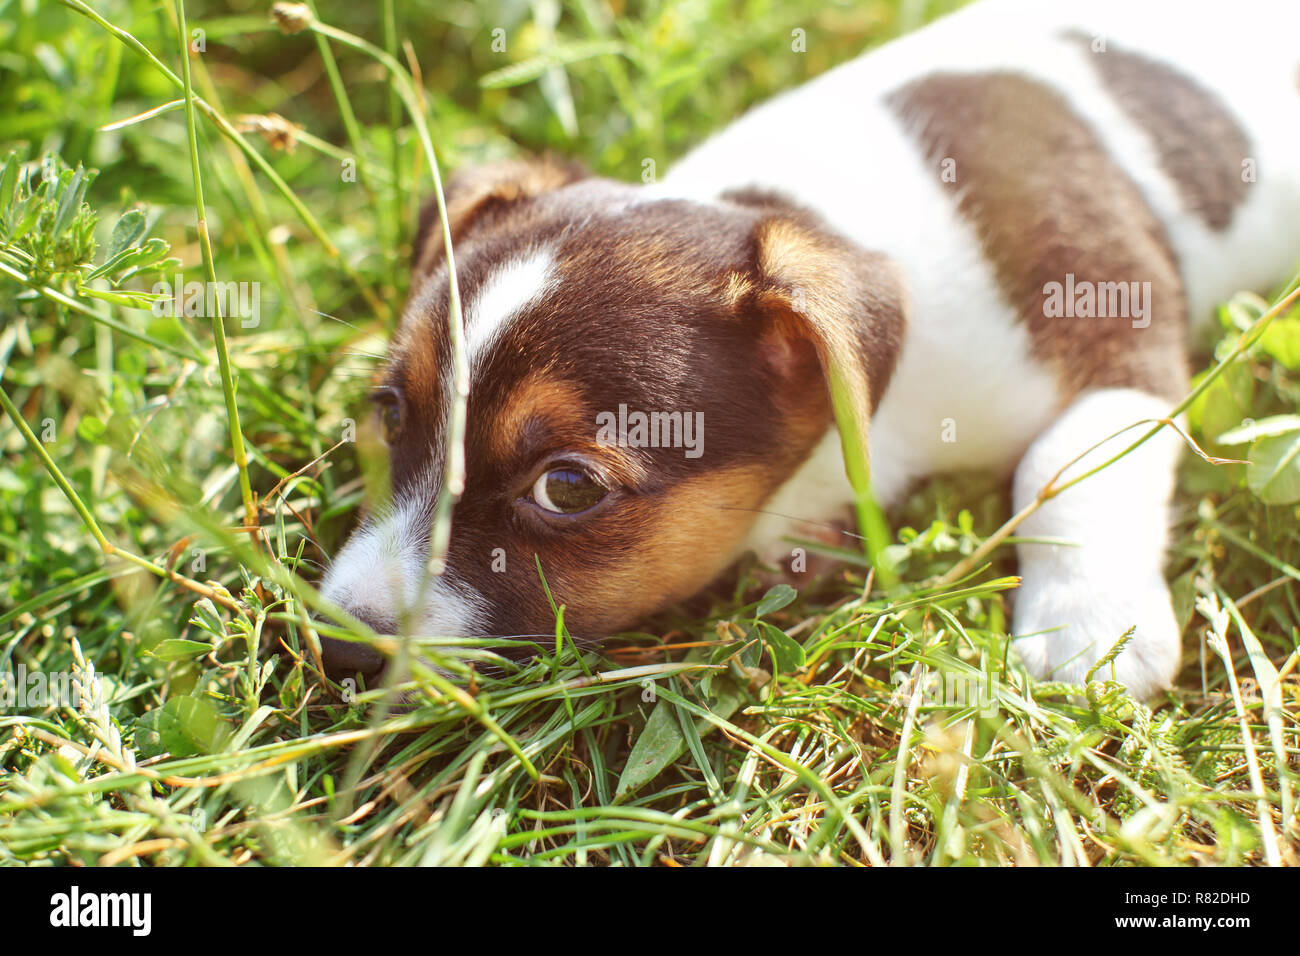 7 weeks old Jack Russell terrier puppy playing in sun lit grass, detail on head looking into camera. - Stock Image